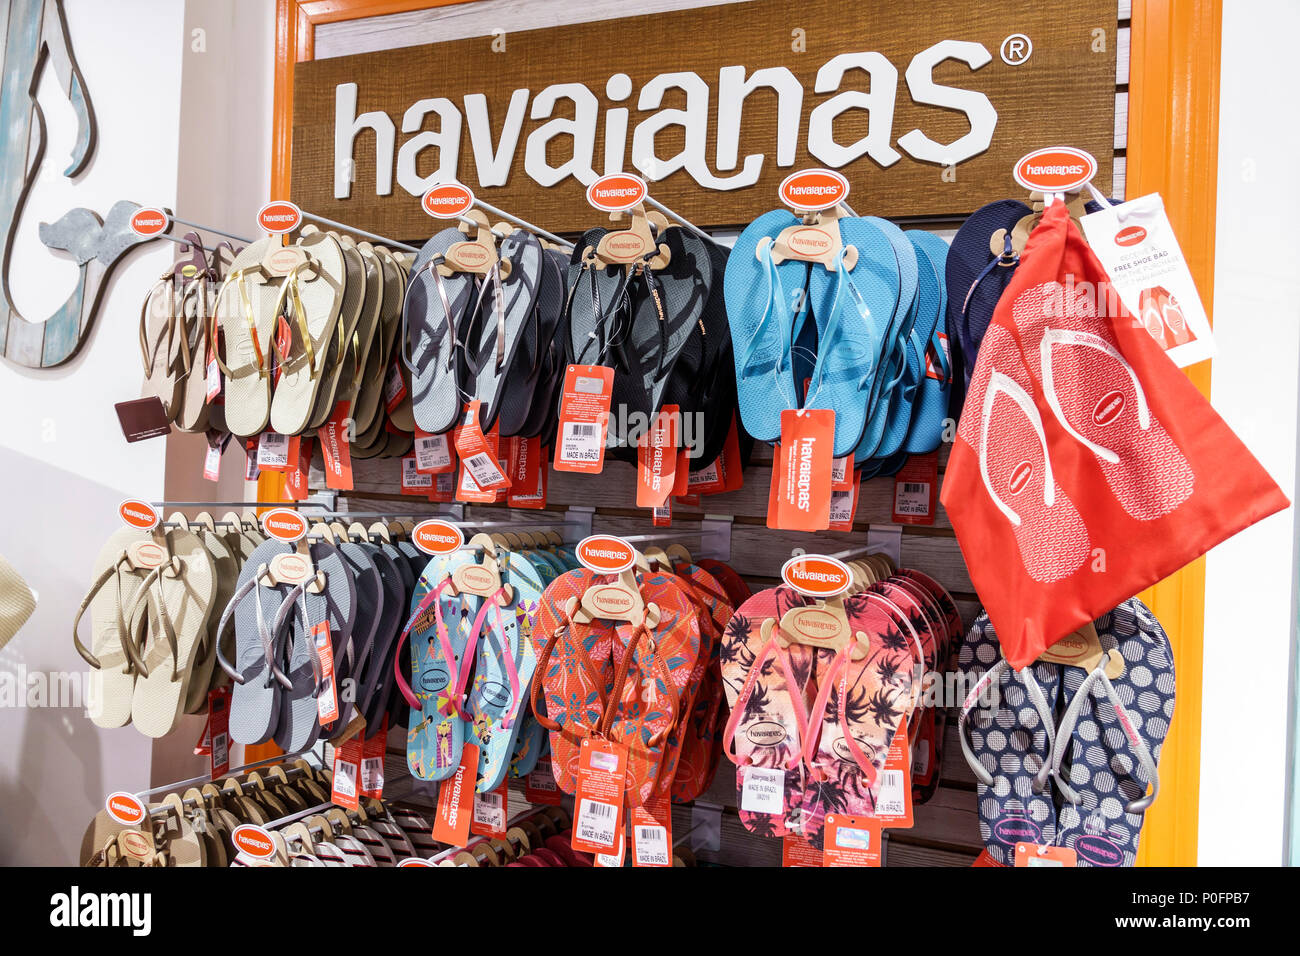 d5981be15 Florida Saint St. Augustine St. George Street shopping gift shop store  display Havaianas thong sandals